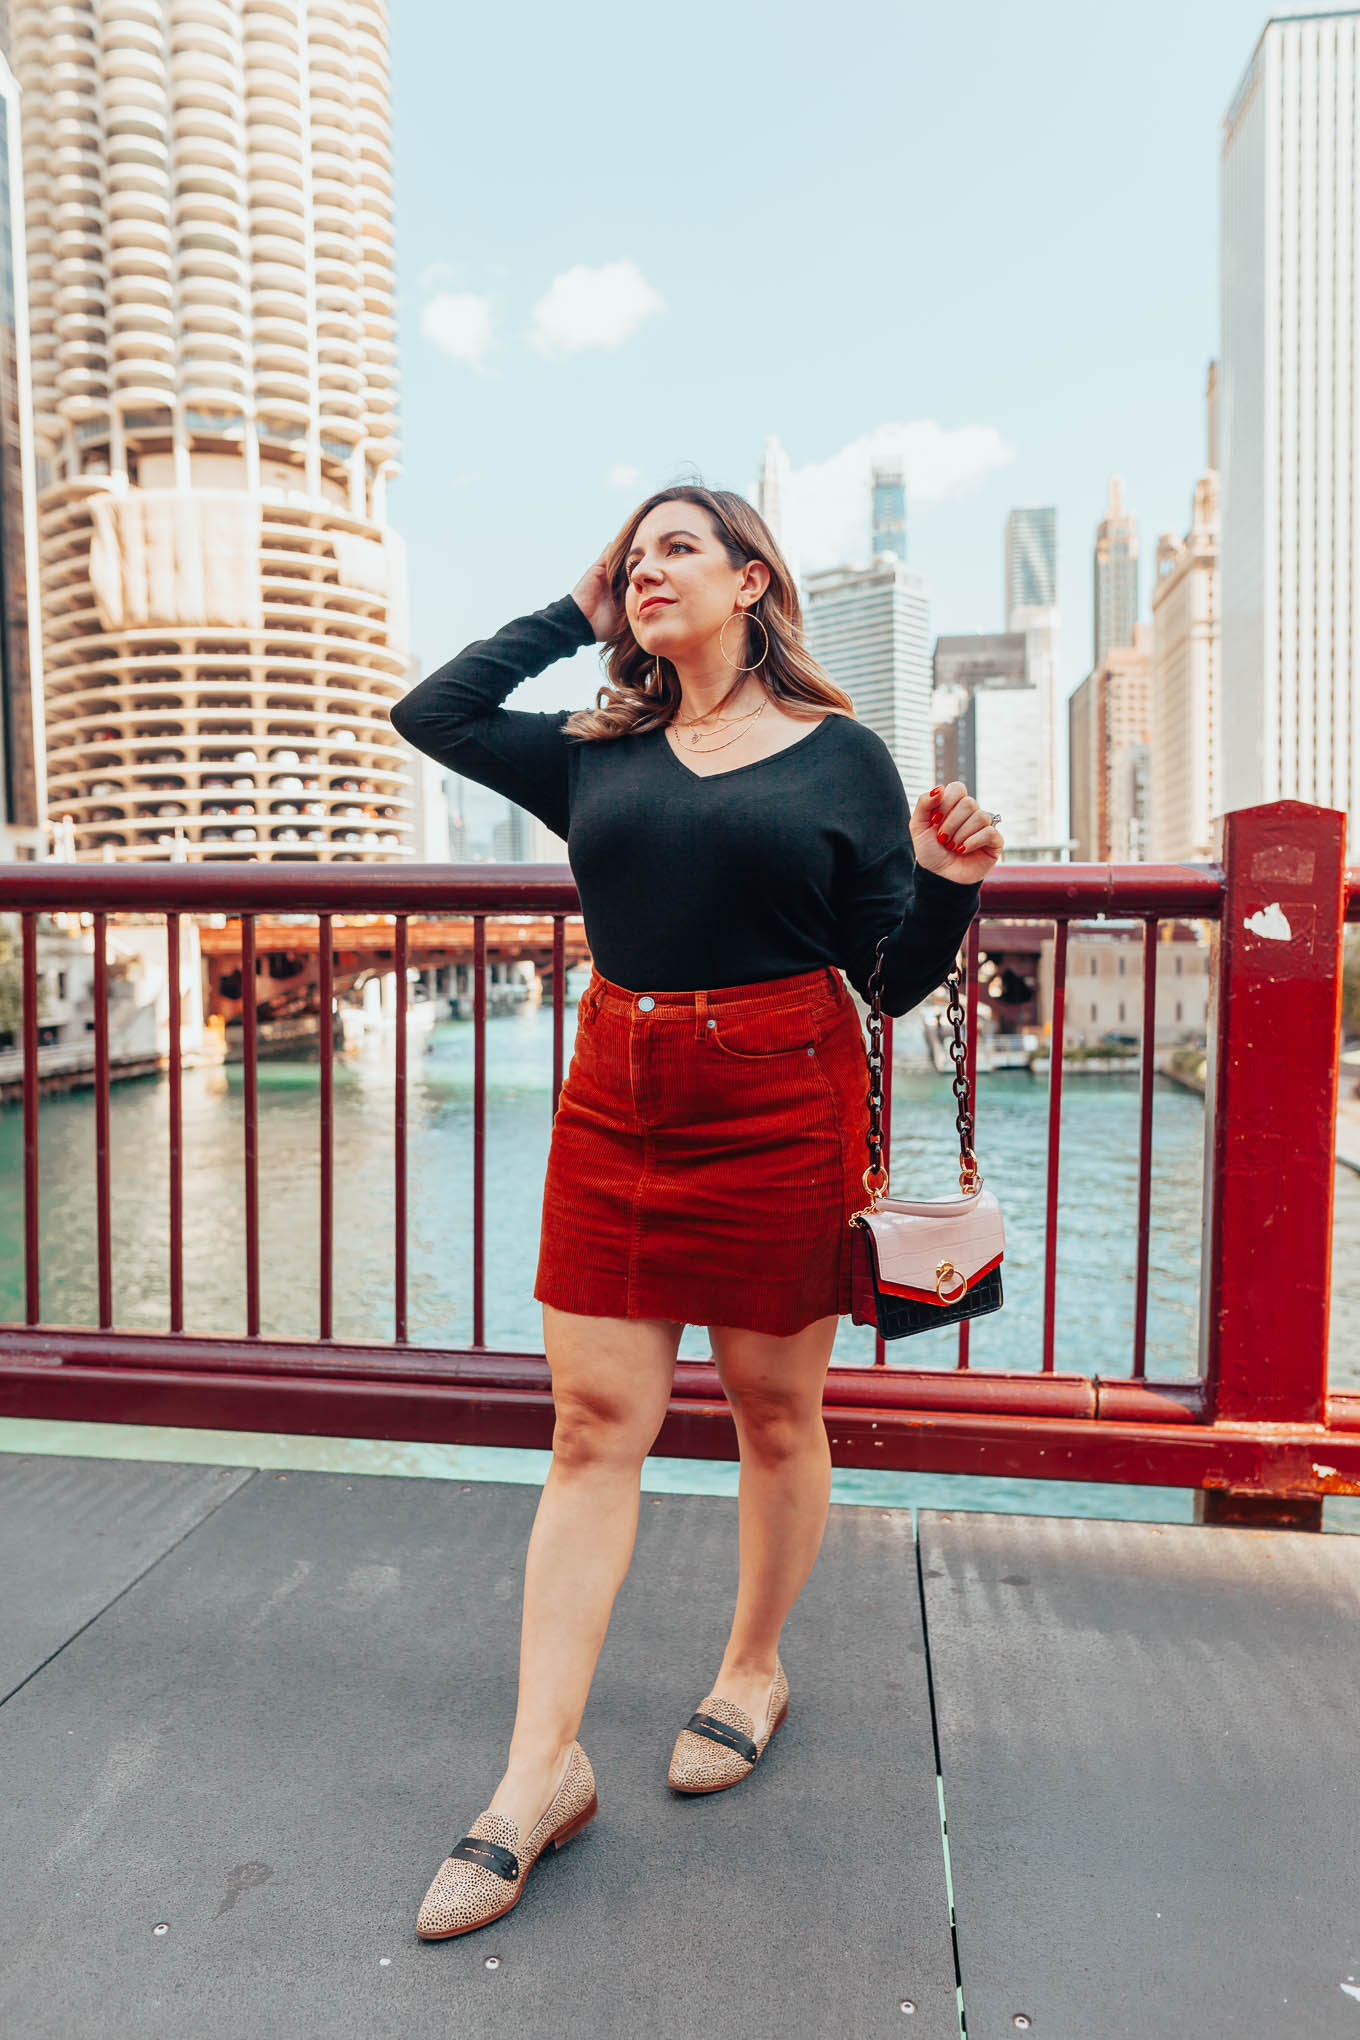 Mini Skirts for Fall Under $50 & On Mondays We Link Up by popular Chicago fashion blog, Glass of Glam: image of a woman standing outside and wearing a Nordstrom BLANKNYC Corduroy A-Line Miniskirt, Nordstrom Gibson Cozy V-Neck Top, Sole Society JESSICA SMOKING SLIPPER, and holding a Mulberry Small Harlow Satchel Red Berry Croc Print.